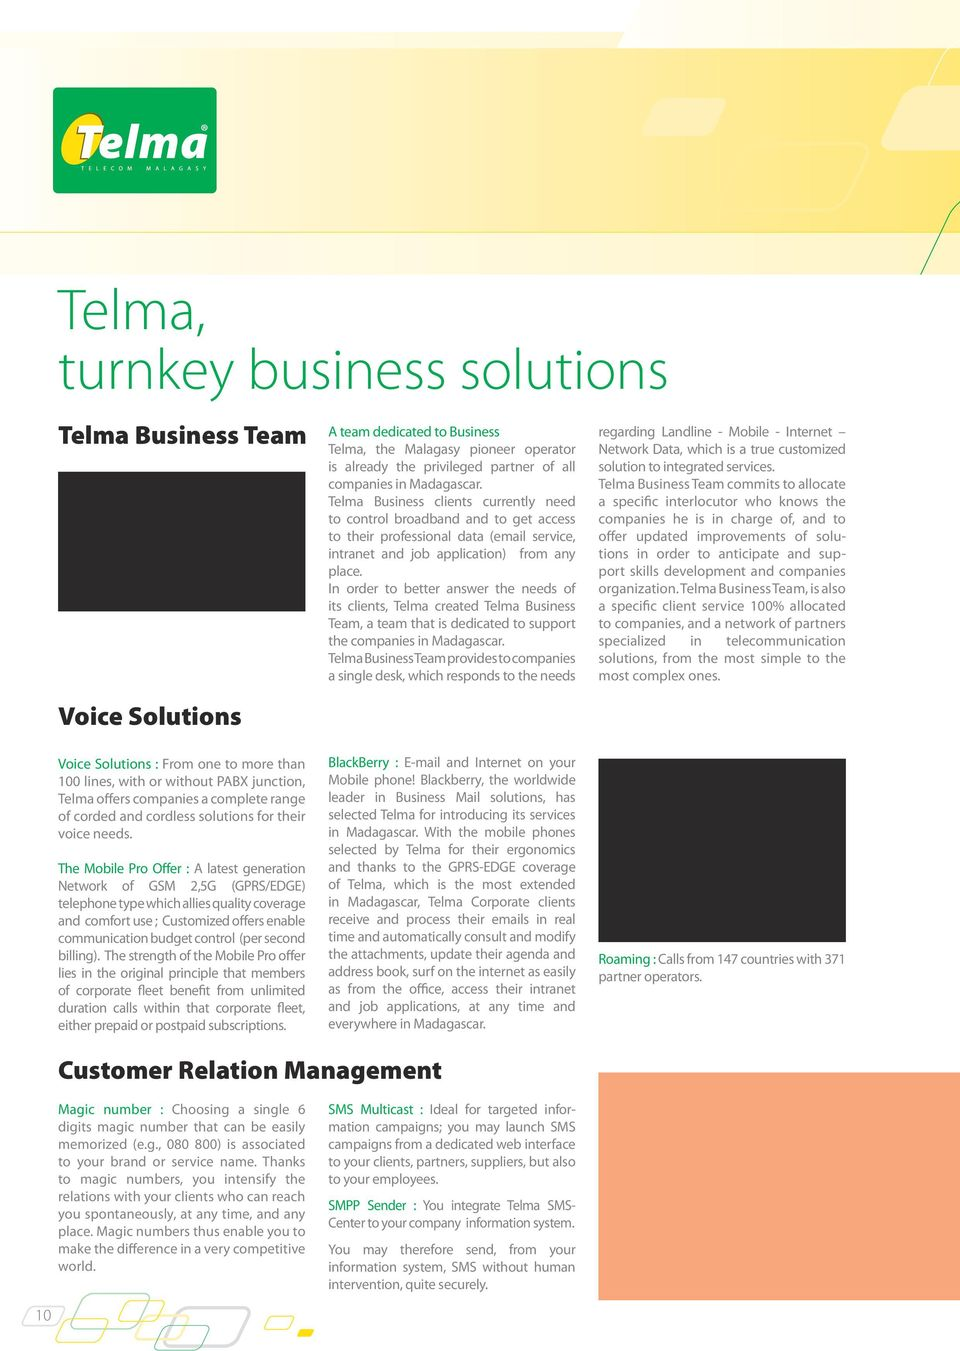 In order to better answer the needs of its clients, Telma created Telma Business Team, a team that is dedicated to support the companies in Madagascar.